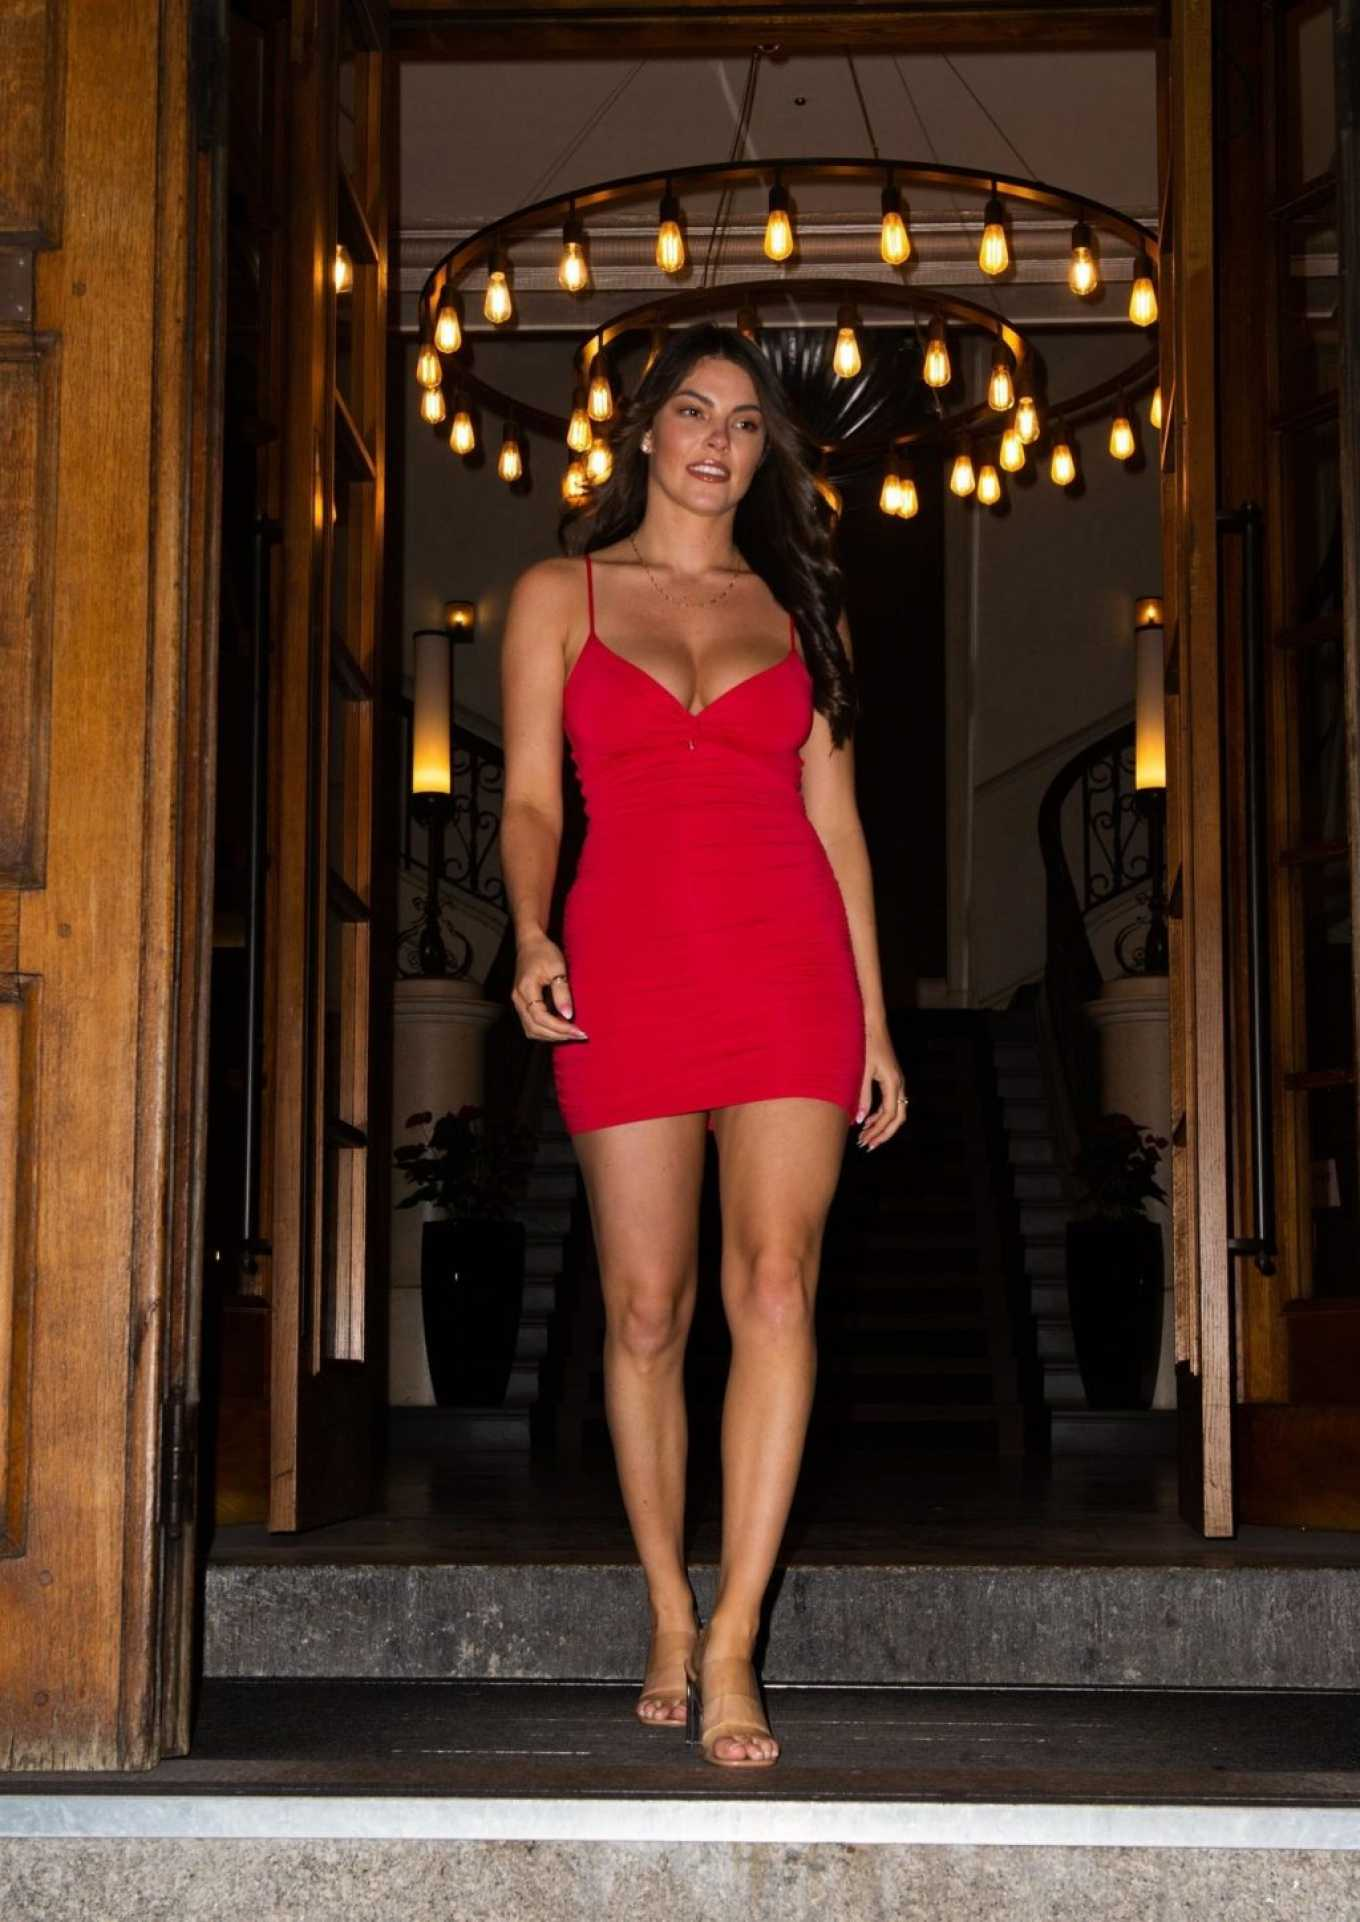 Courthouse Hotel Shoreditch: Rebecca Gormley In Red Mini Dress-01